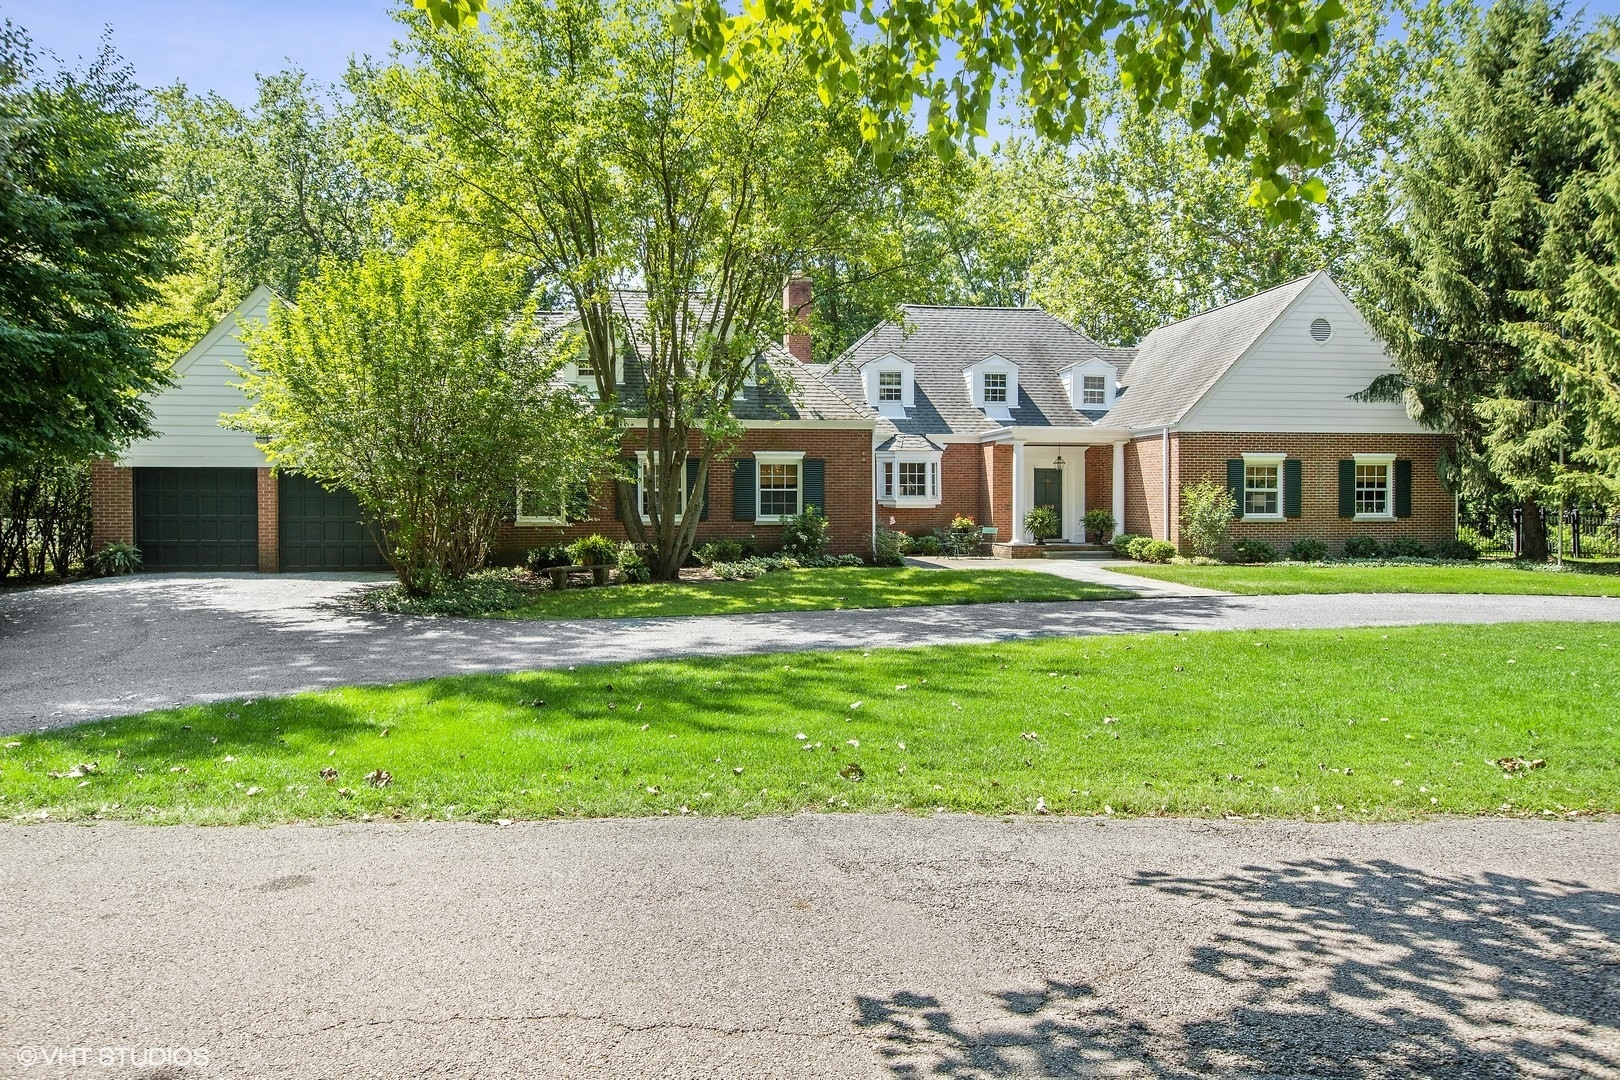 1050 SUNSET Road, Winnetka, Illinois